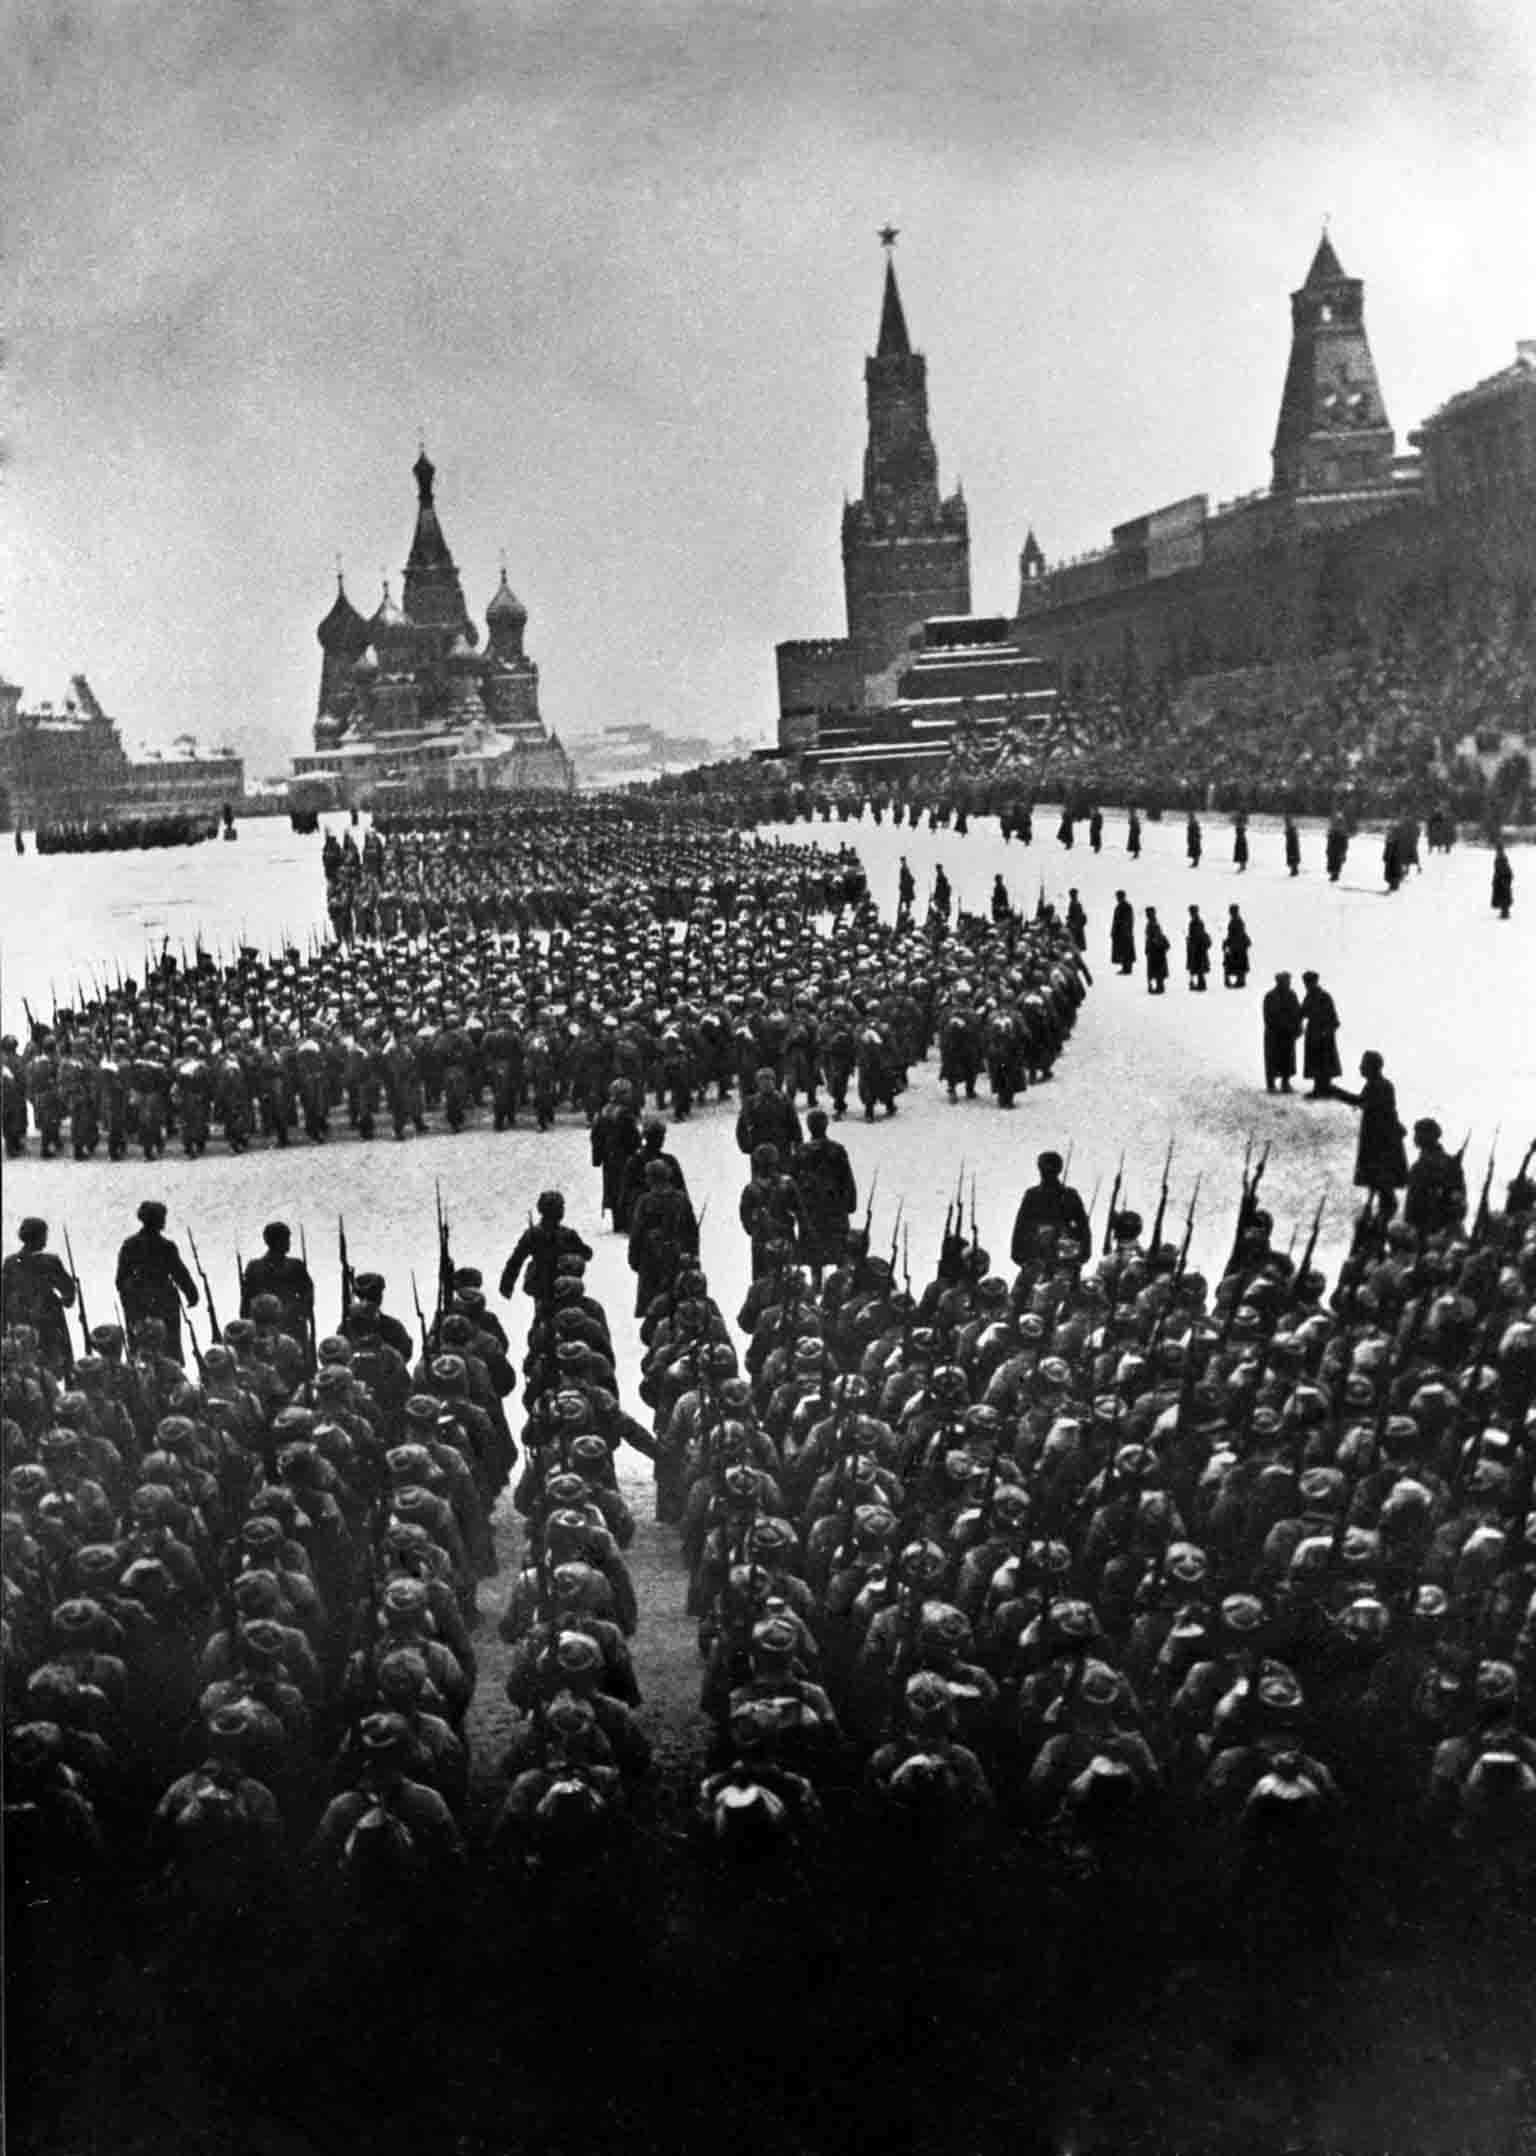 World War 2 - red square parade